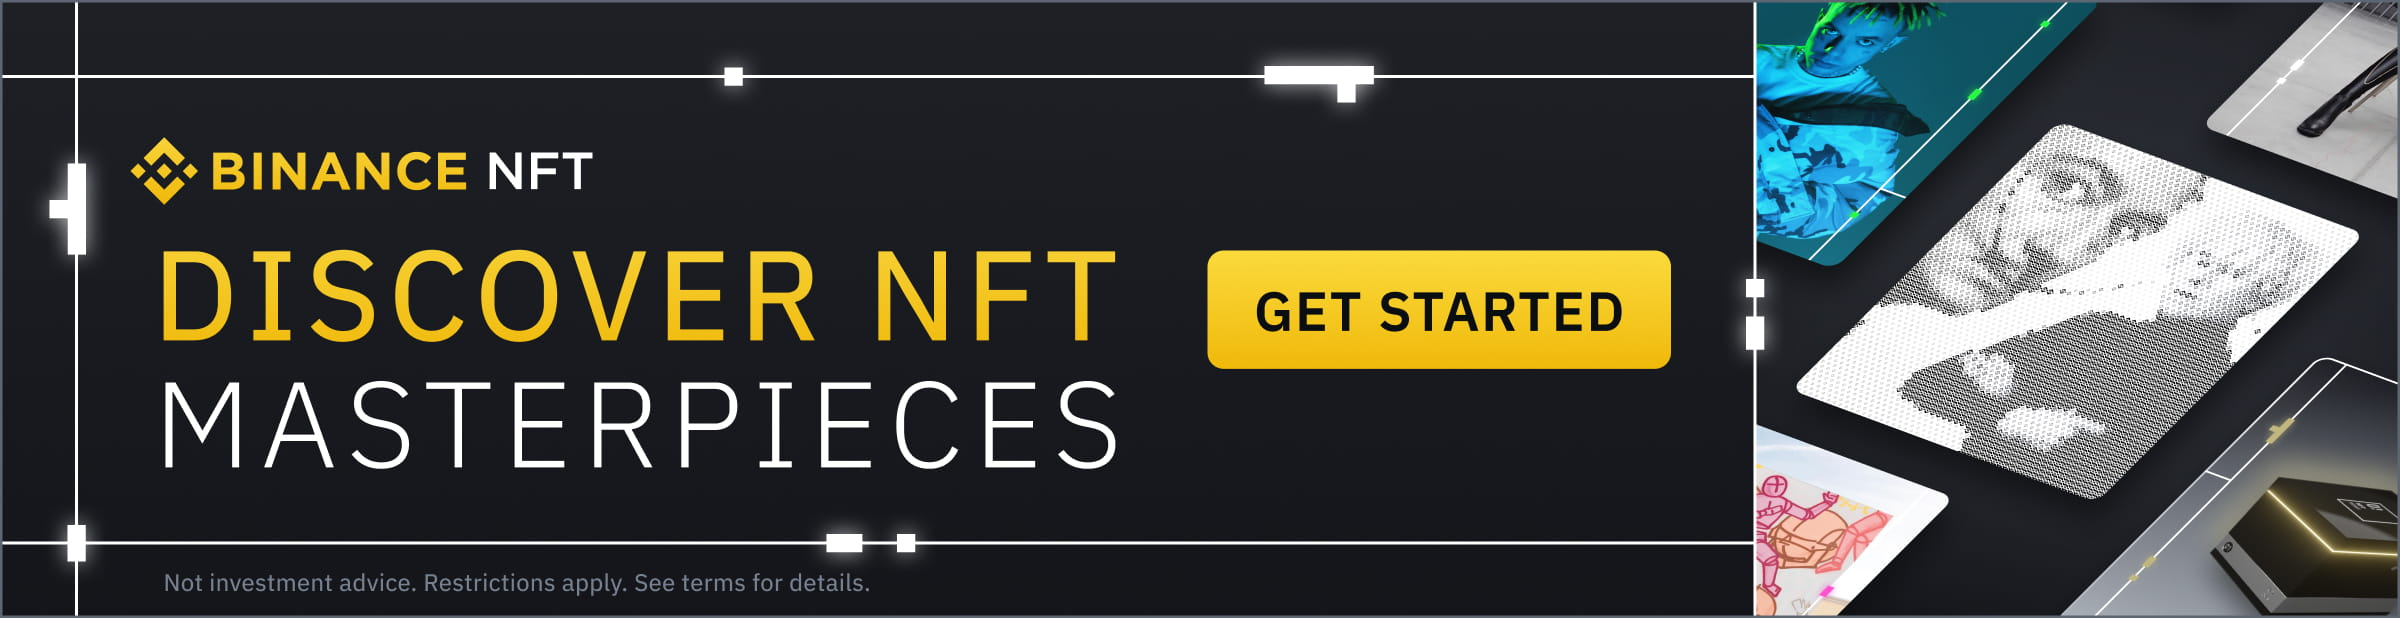 """Binance NFT Drop: Get The """"Big Time"""" Collection Featuring Early Access Passes, Mystery Boxes and much more!Cryptocurrency Trading Signals, Strategies & Templates   DexStrats"""